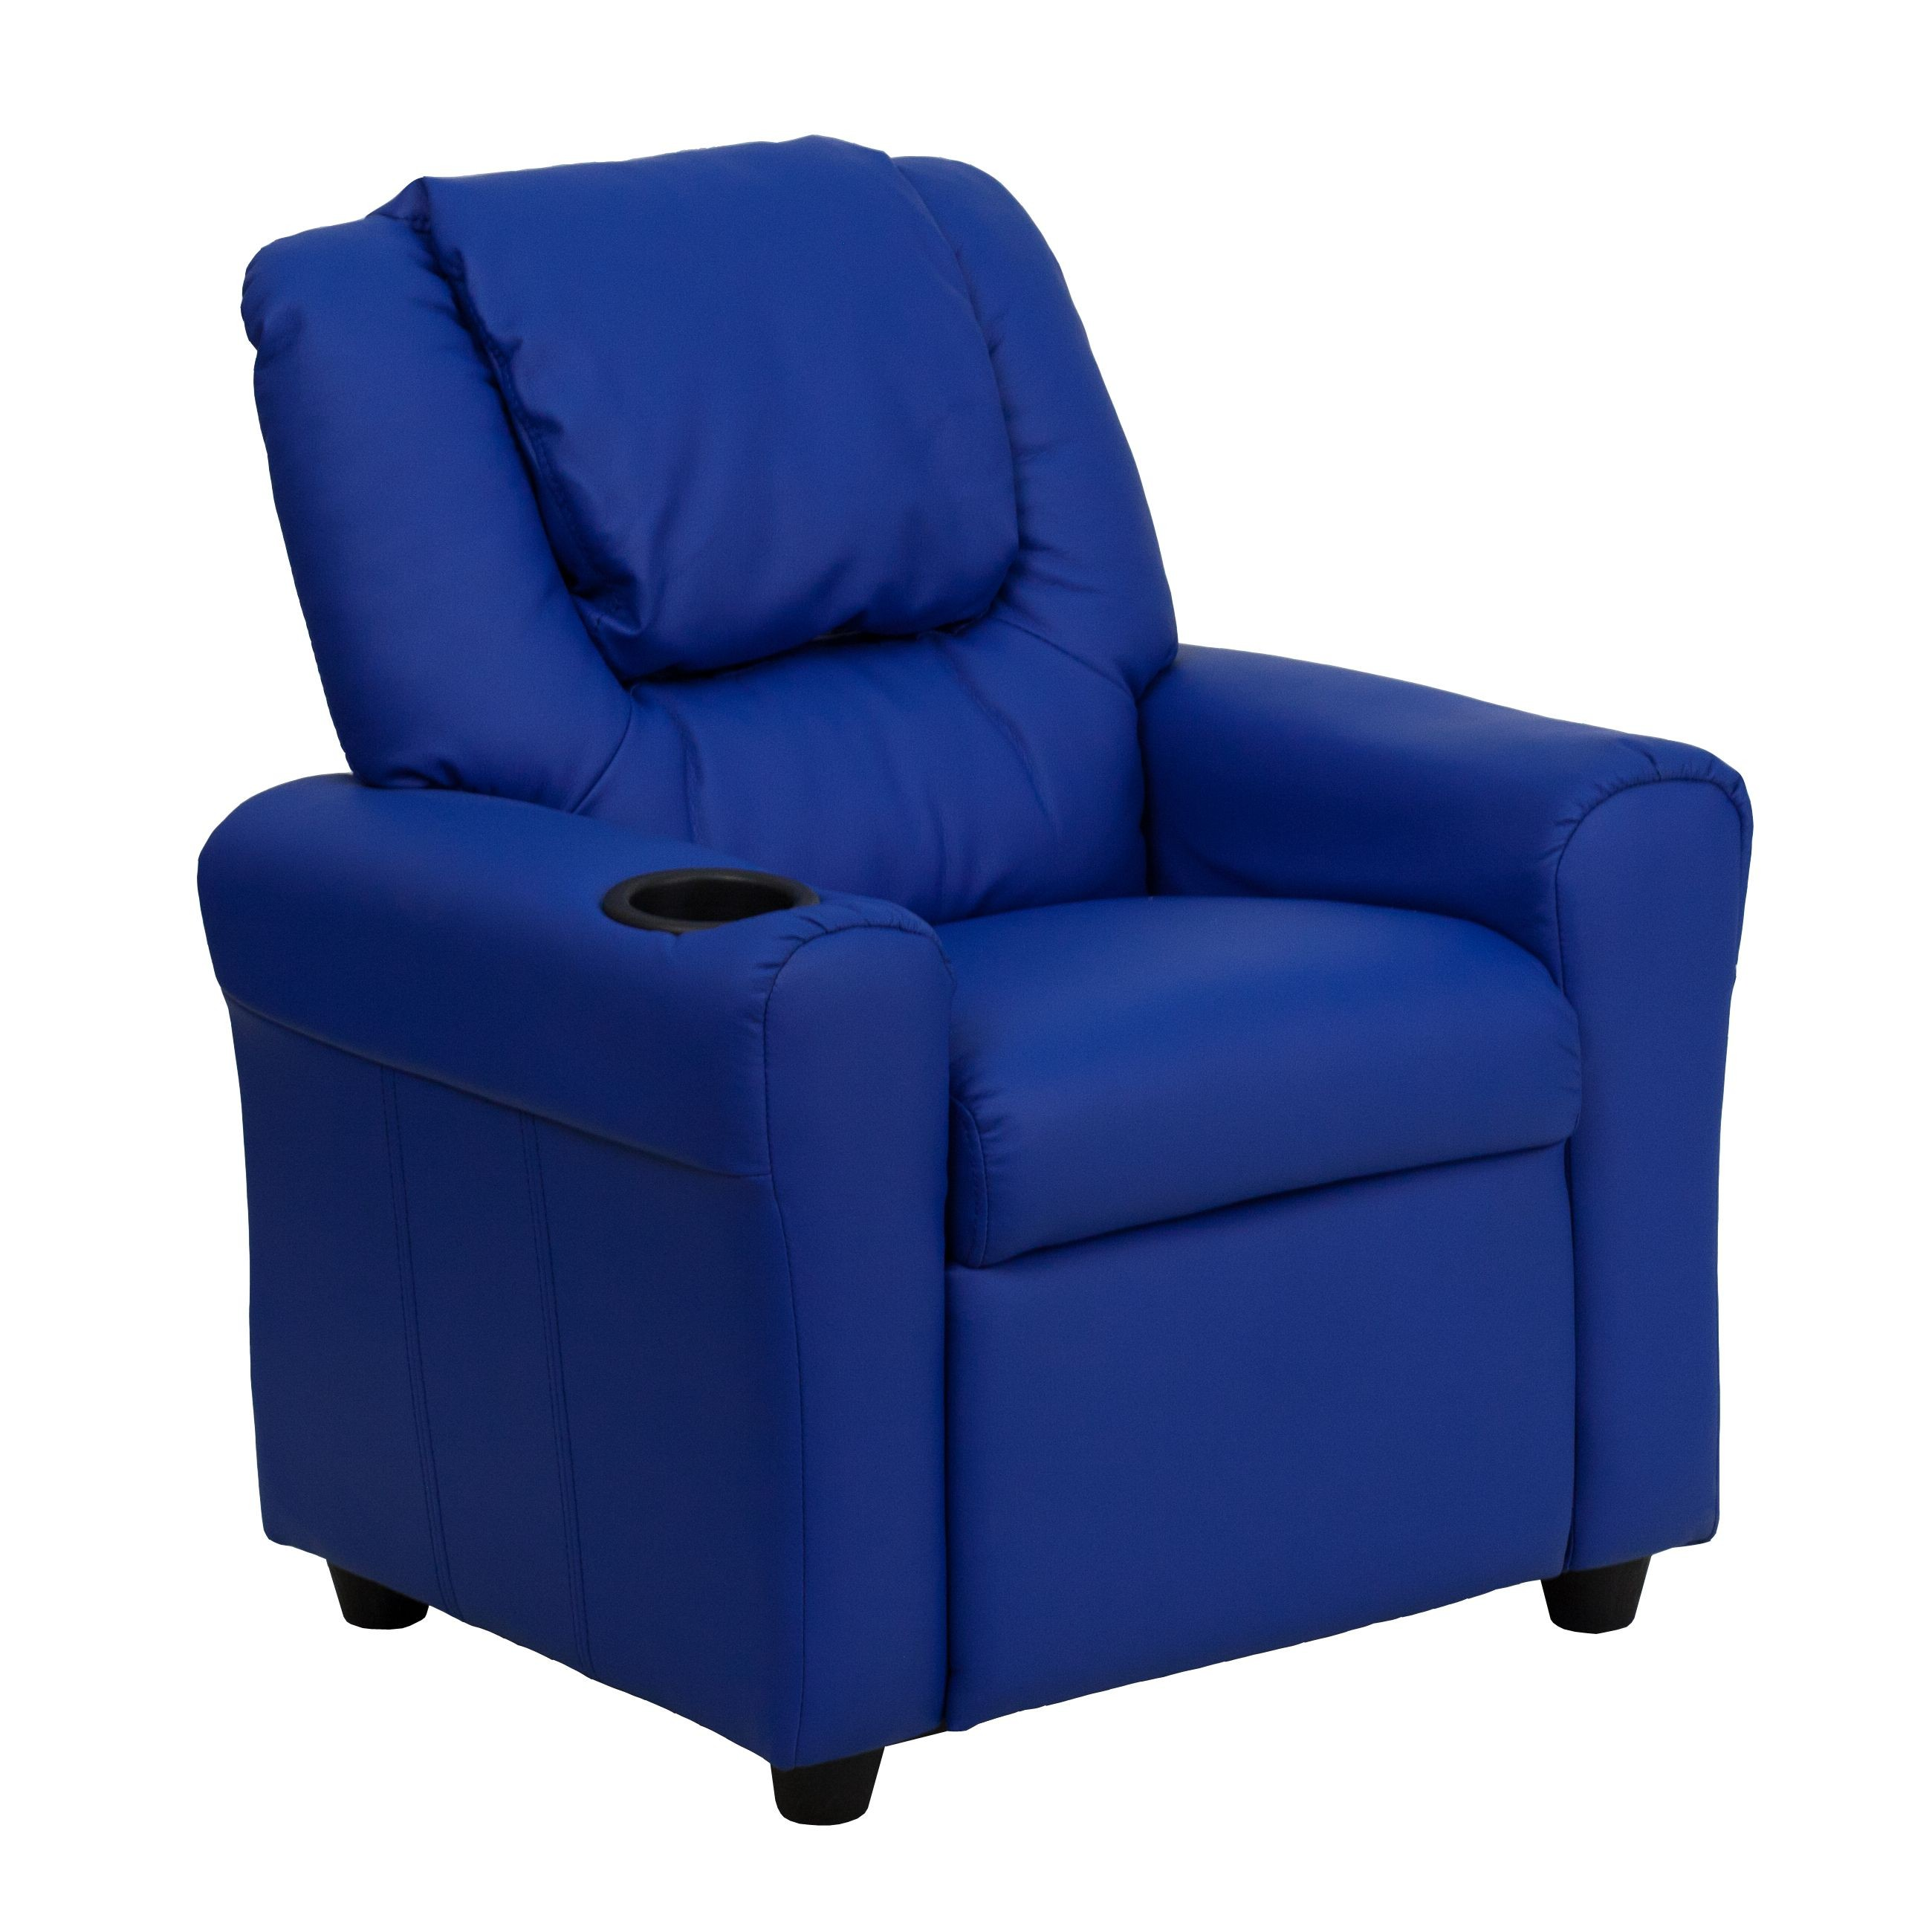 Children's Lounge Chair Flash Furniture Dg Ult Kid Blue Gg Contemporary Blue Vinyl